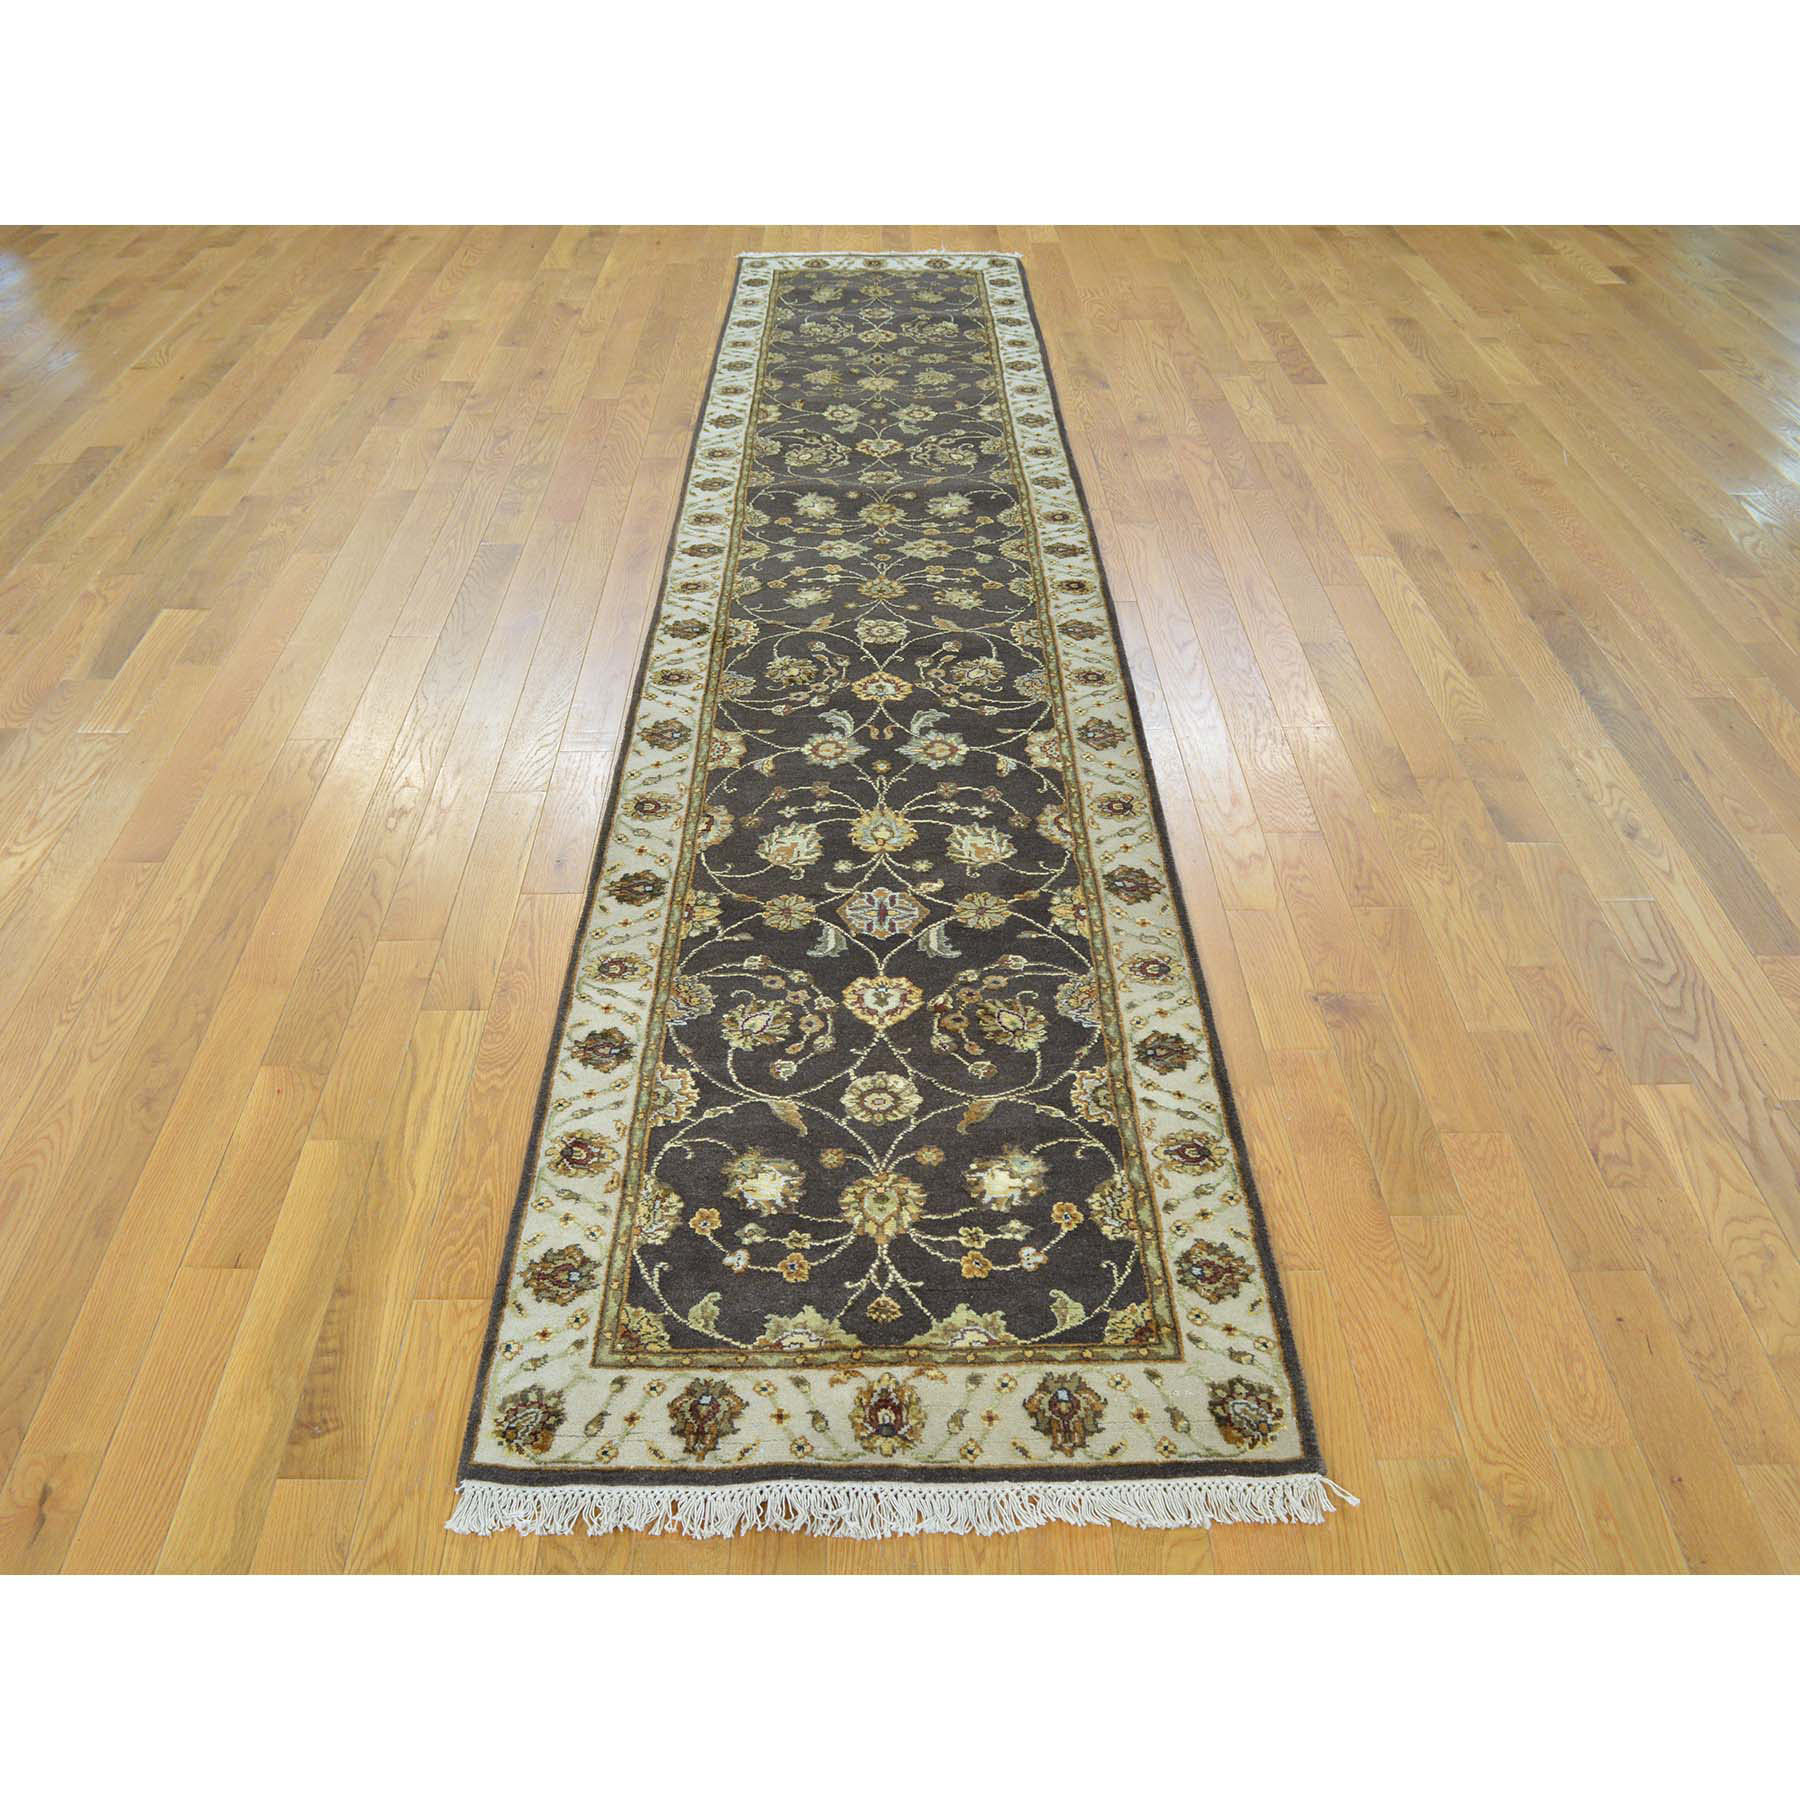 2.5- x 12- XL Runner Wool and Silk Kashan Chocolate Brown Oriental Rug Handmade